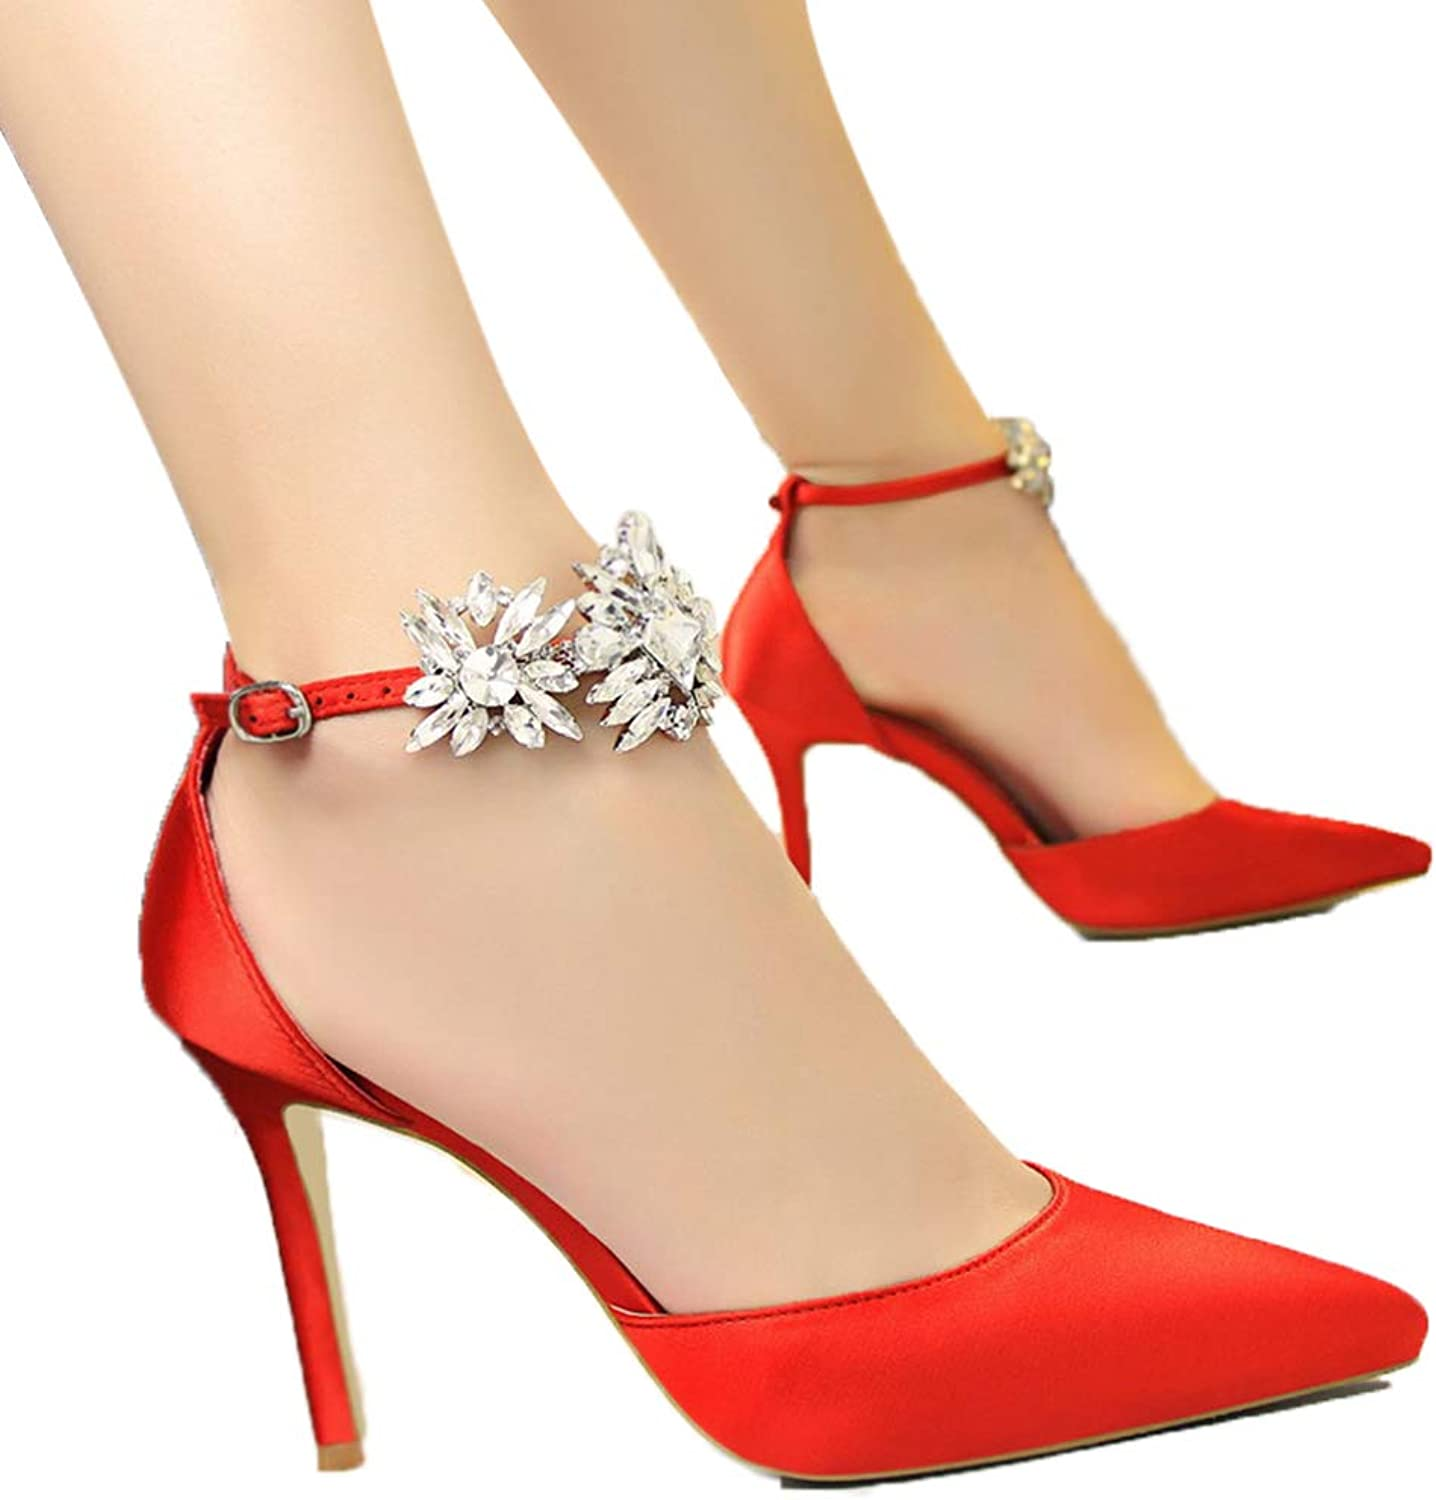 Drew Toby Womens Pumps Stiletto High Heel Shallow Mouth Pointed-Toe Rhinestone Sandals